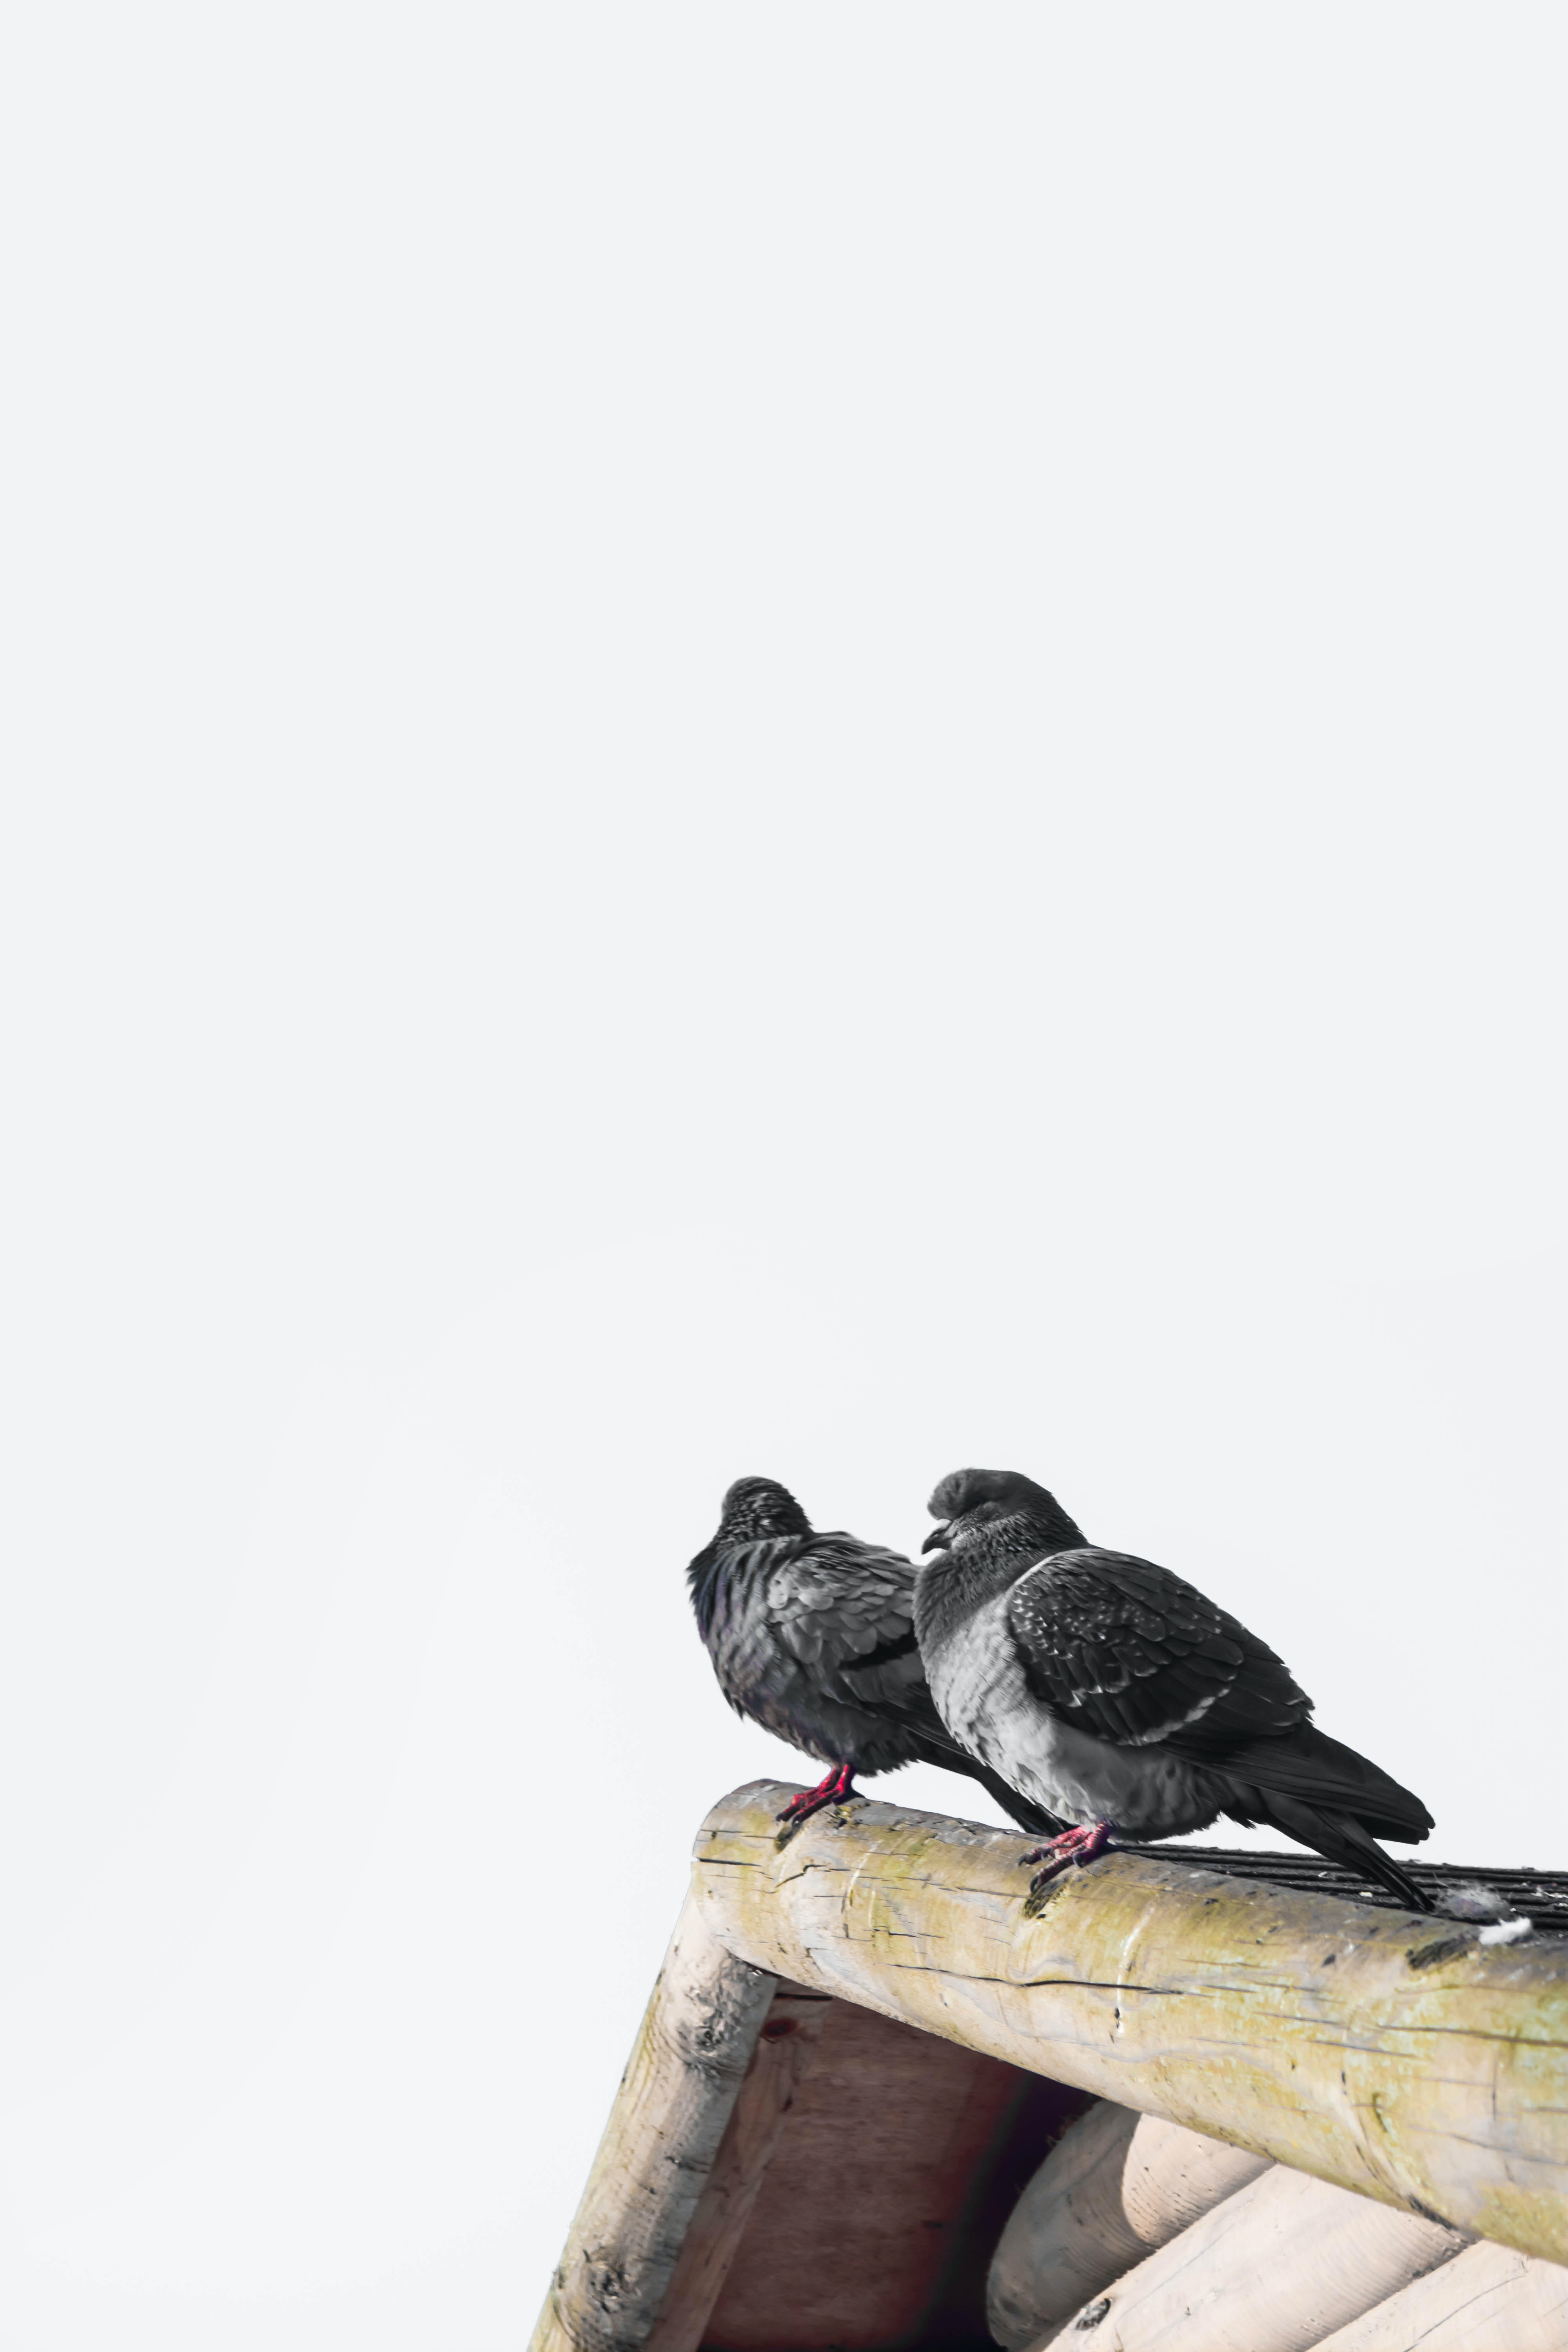 Two birds sitting on a ledge.